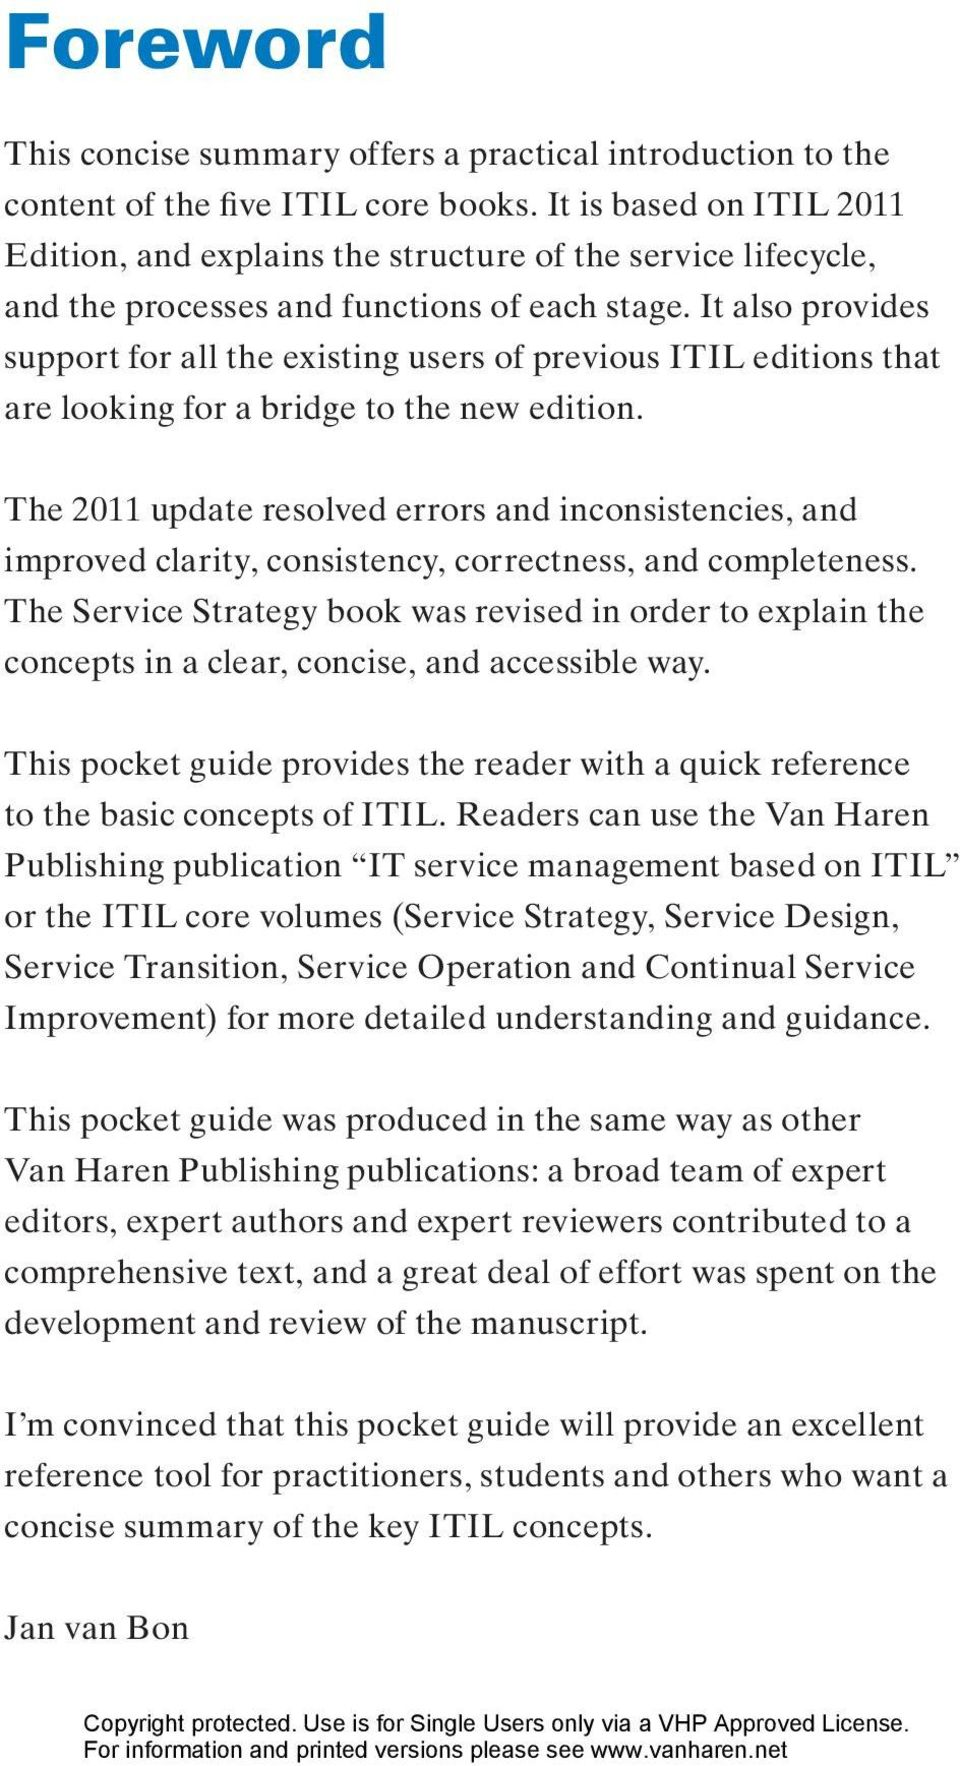 It also provides support for all the existing users of previous ITIL editions that are looking for a bridge to the new edition.